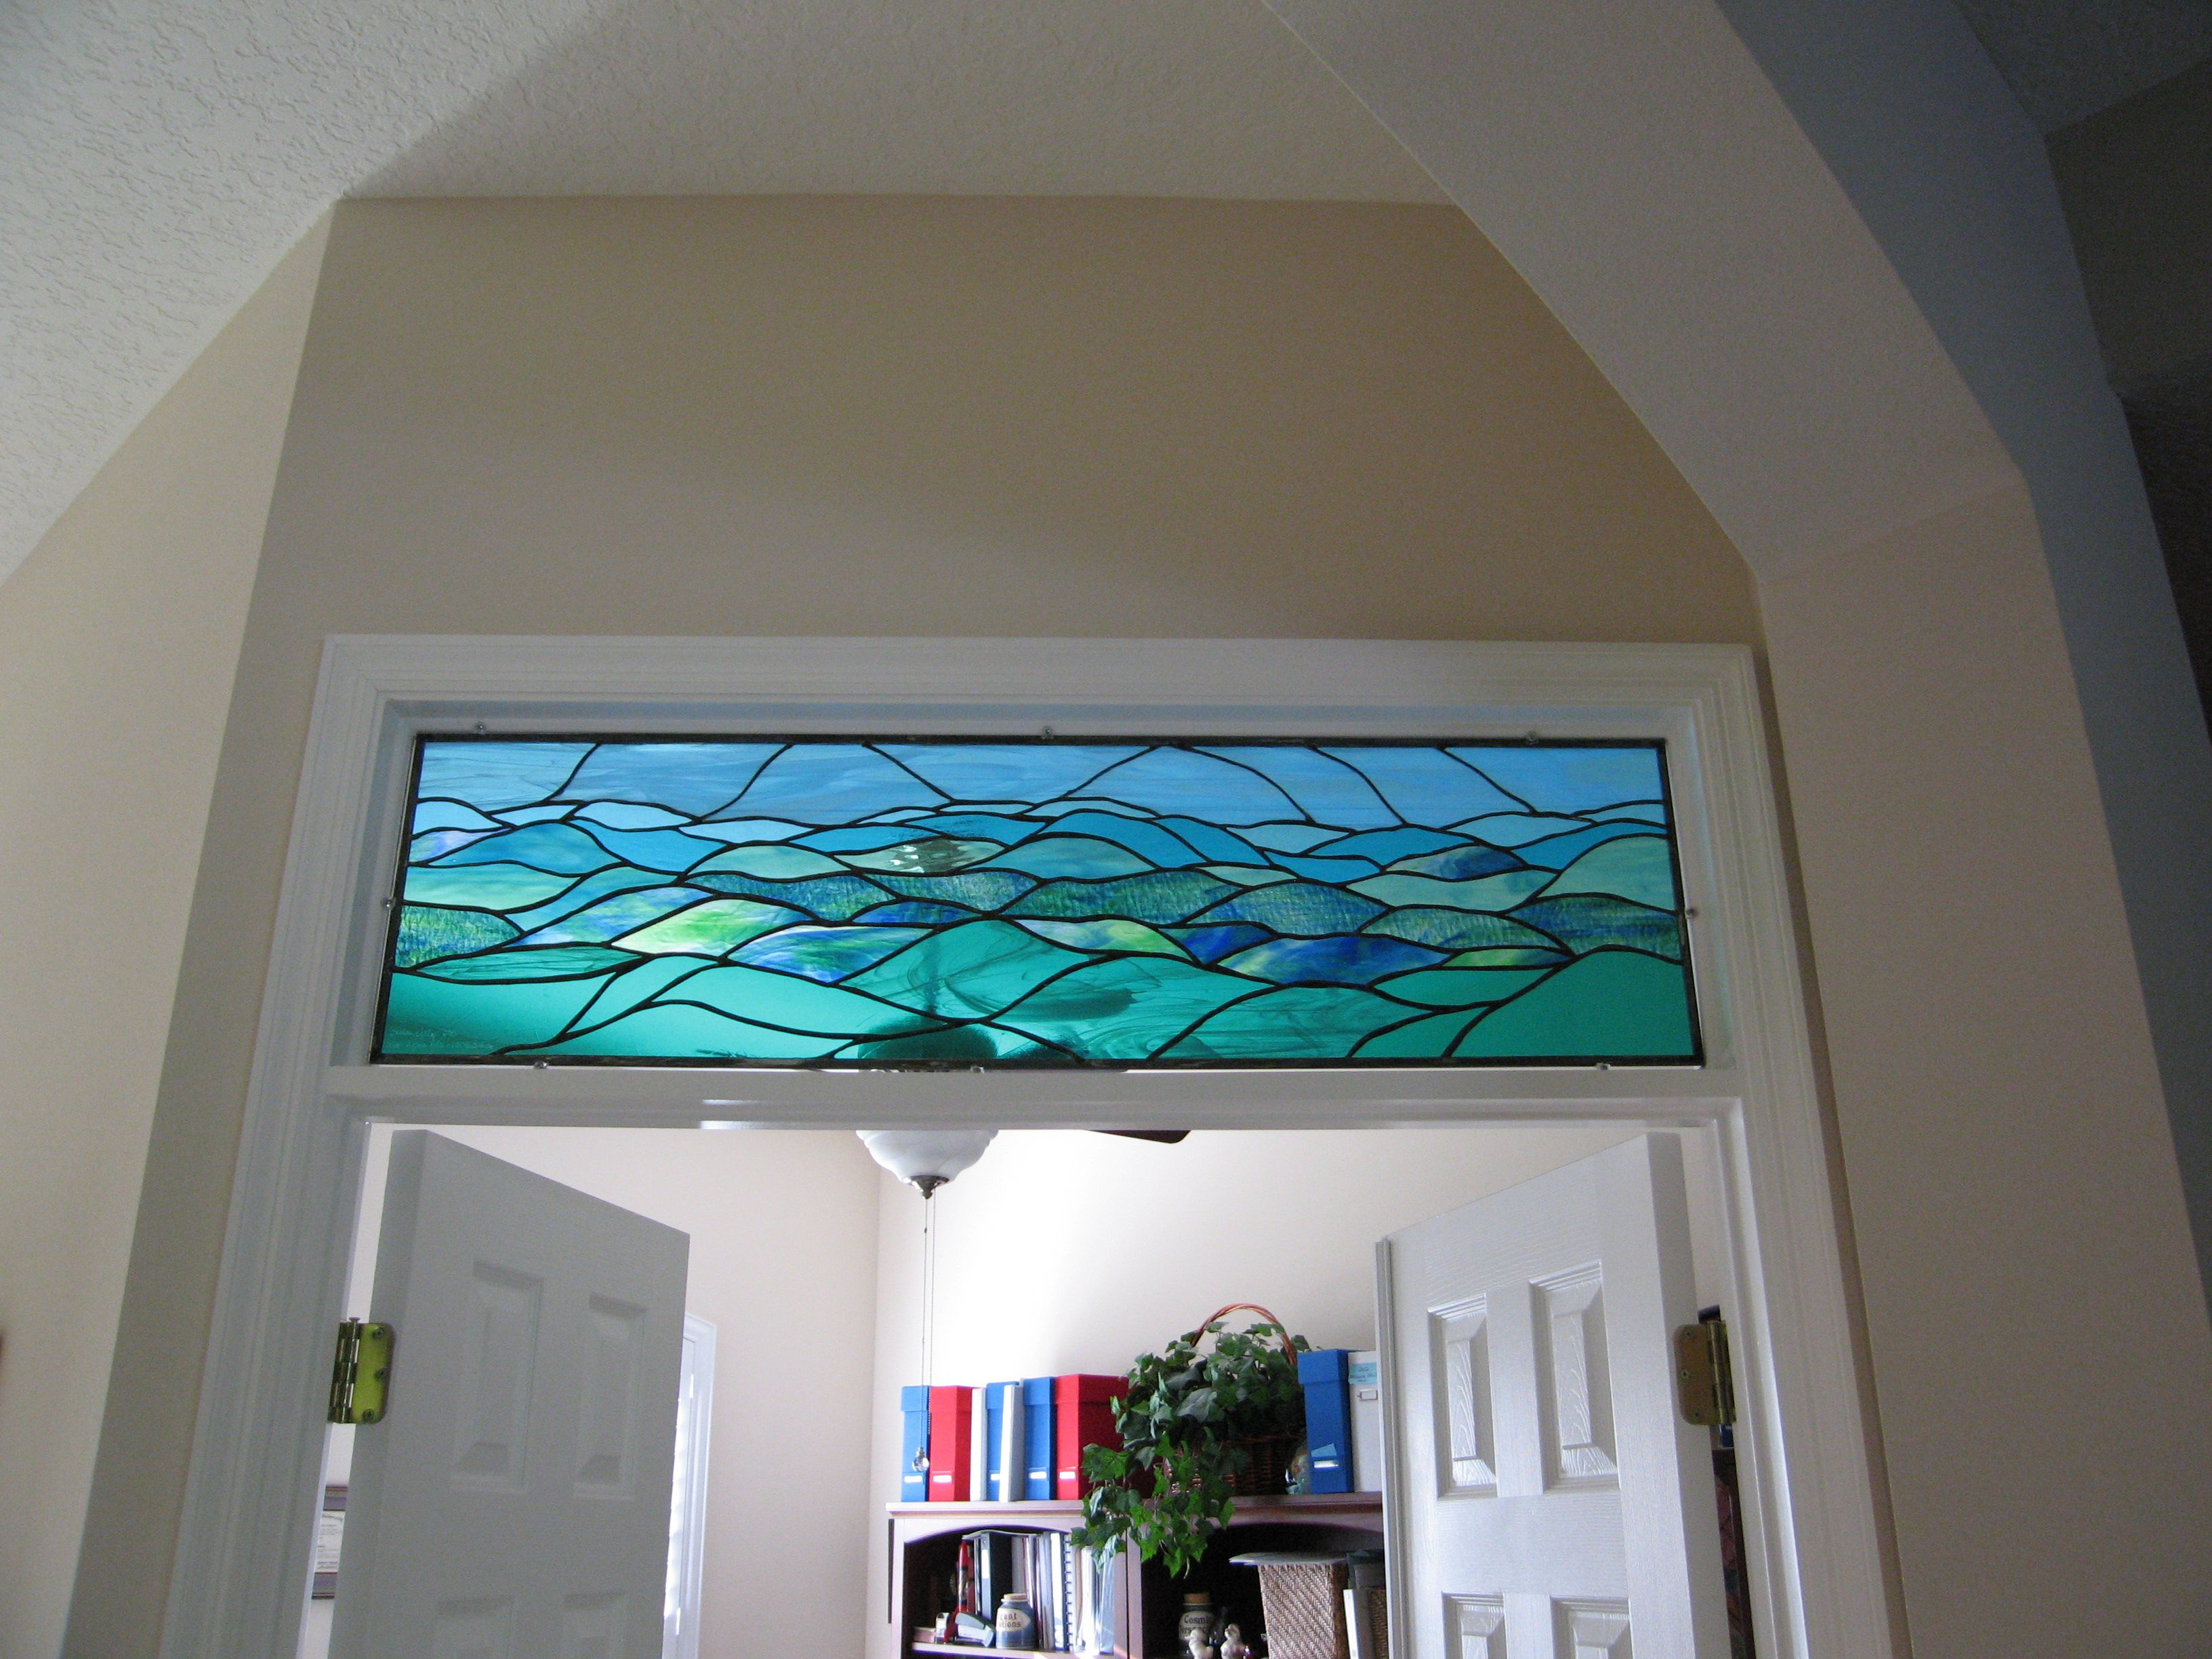 I Made This Stained Glass Window This Year Meant To Represent The